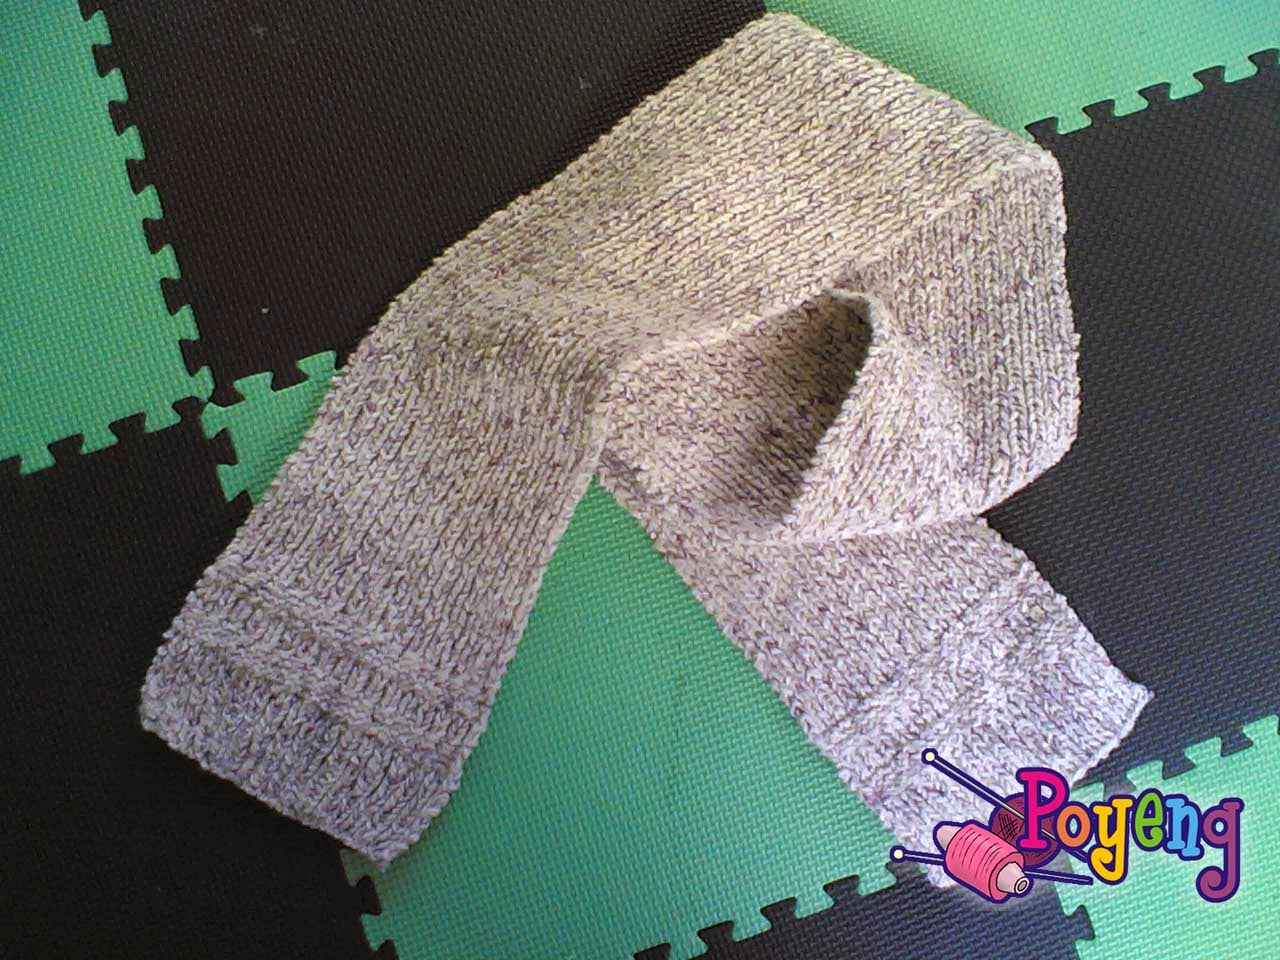 Ajeng belajar merajut rajut free knitting pattern simple scarf this is my first knitting project finished this very simple scarf in one month soooo newbie p bankloansurffo Gallery